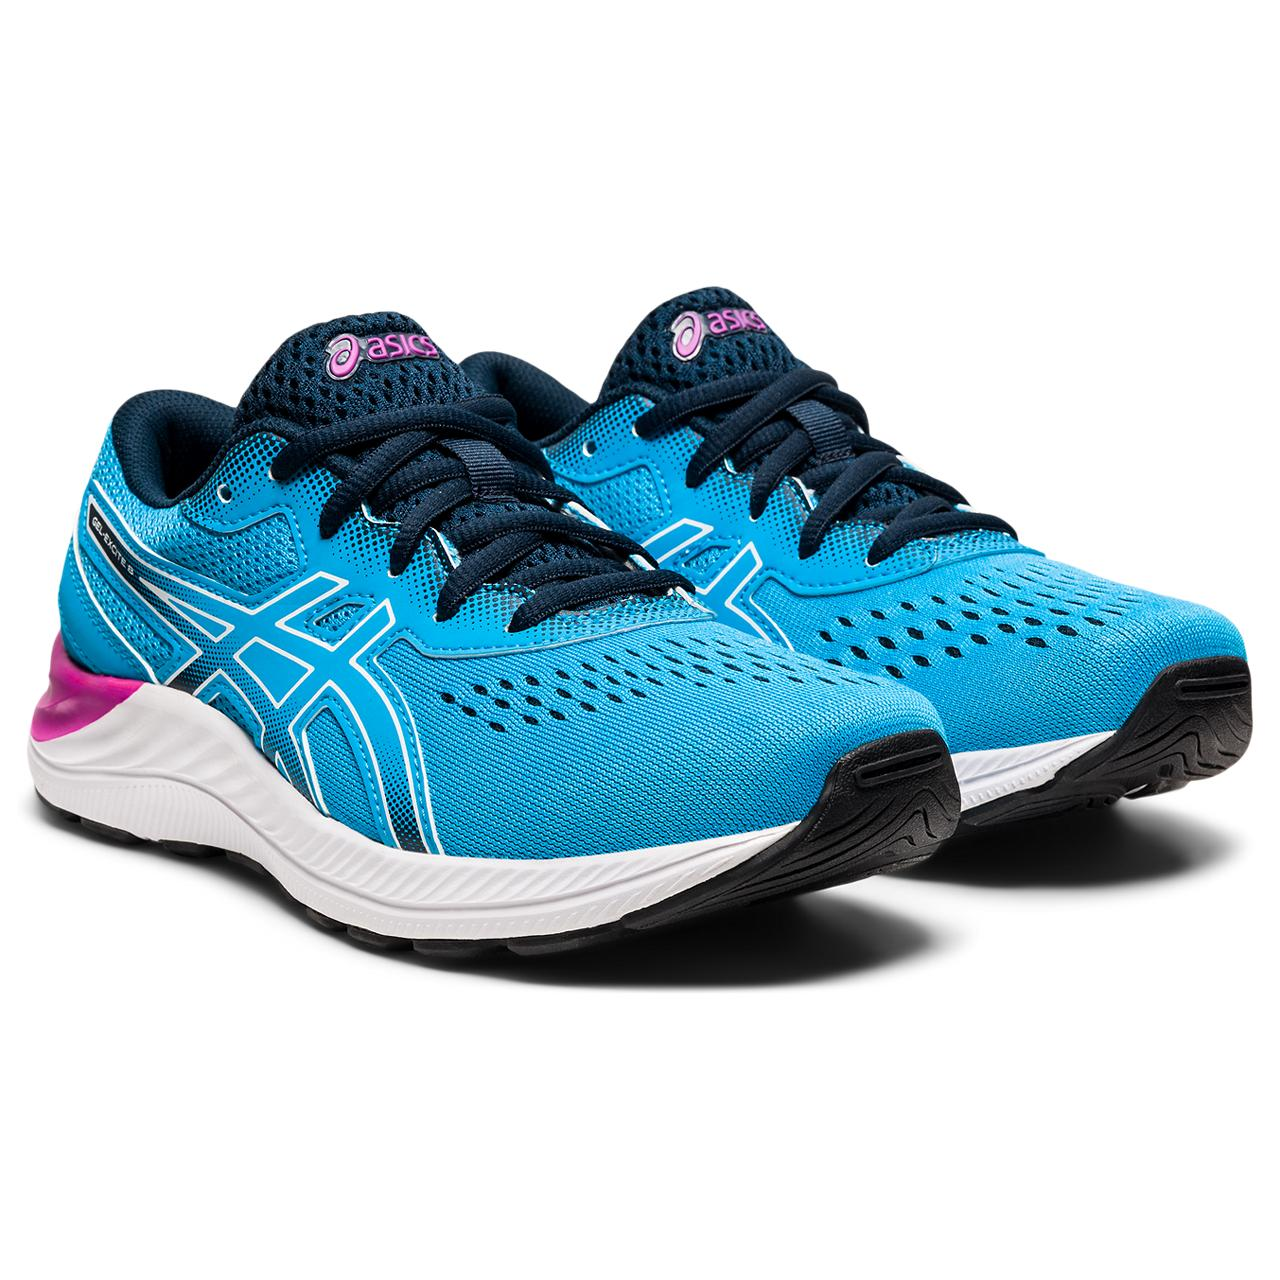 'ASICS' Youth Gel Excite 8 - Digital Aqua / White